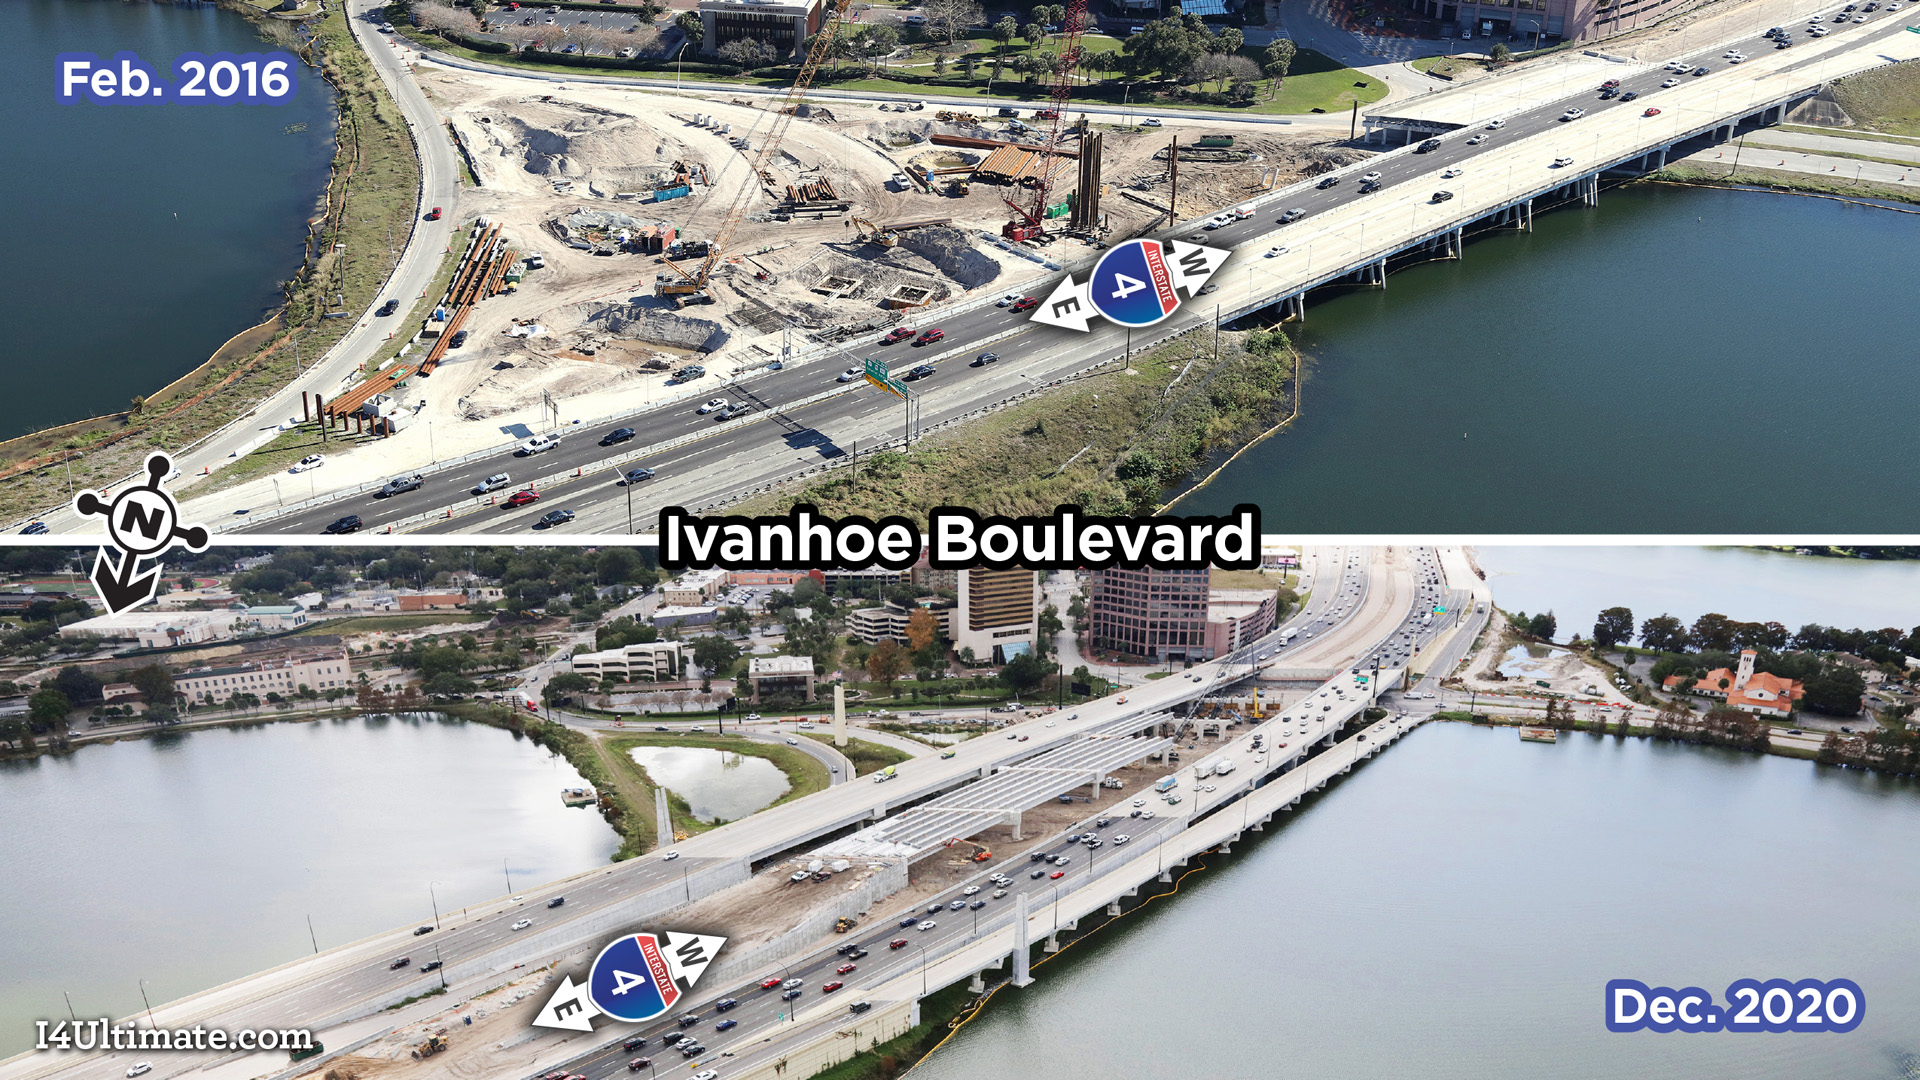 4738-I4Ultimate-GUL-campaign-images-20210212-12-Ivanhoe-Boulevard